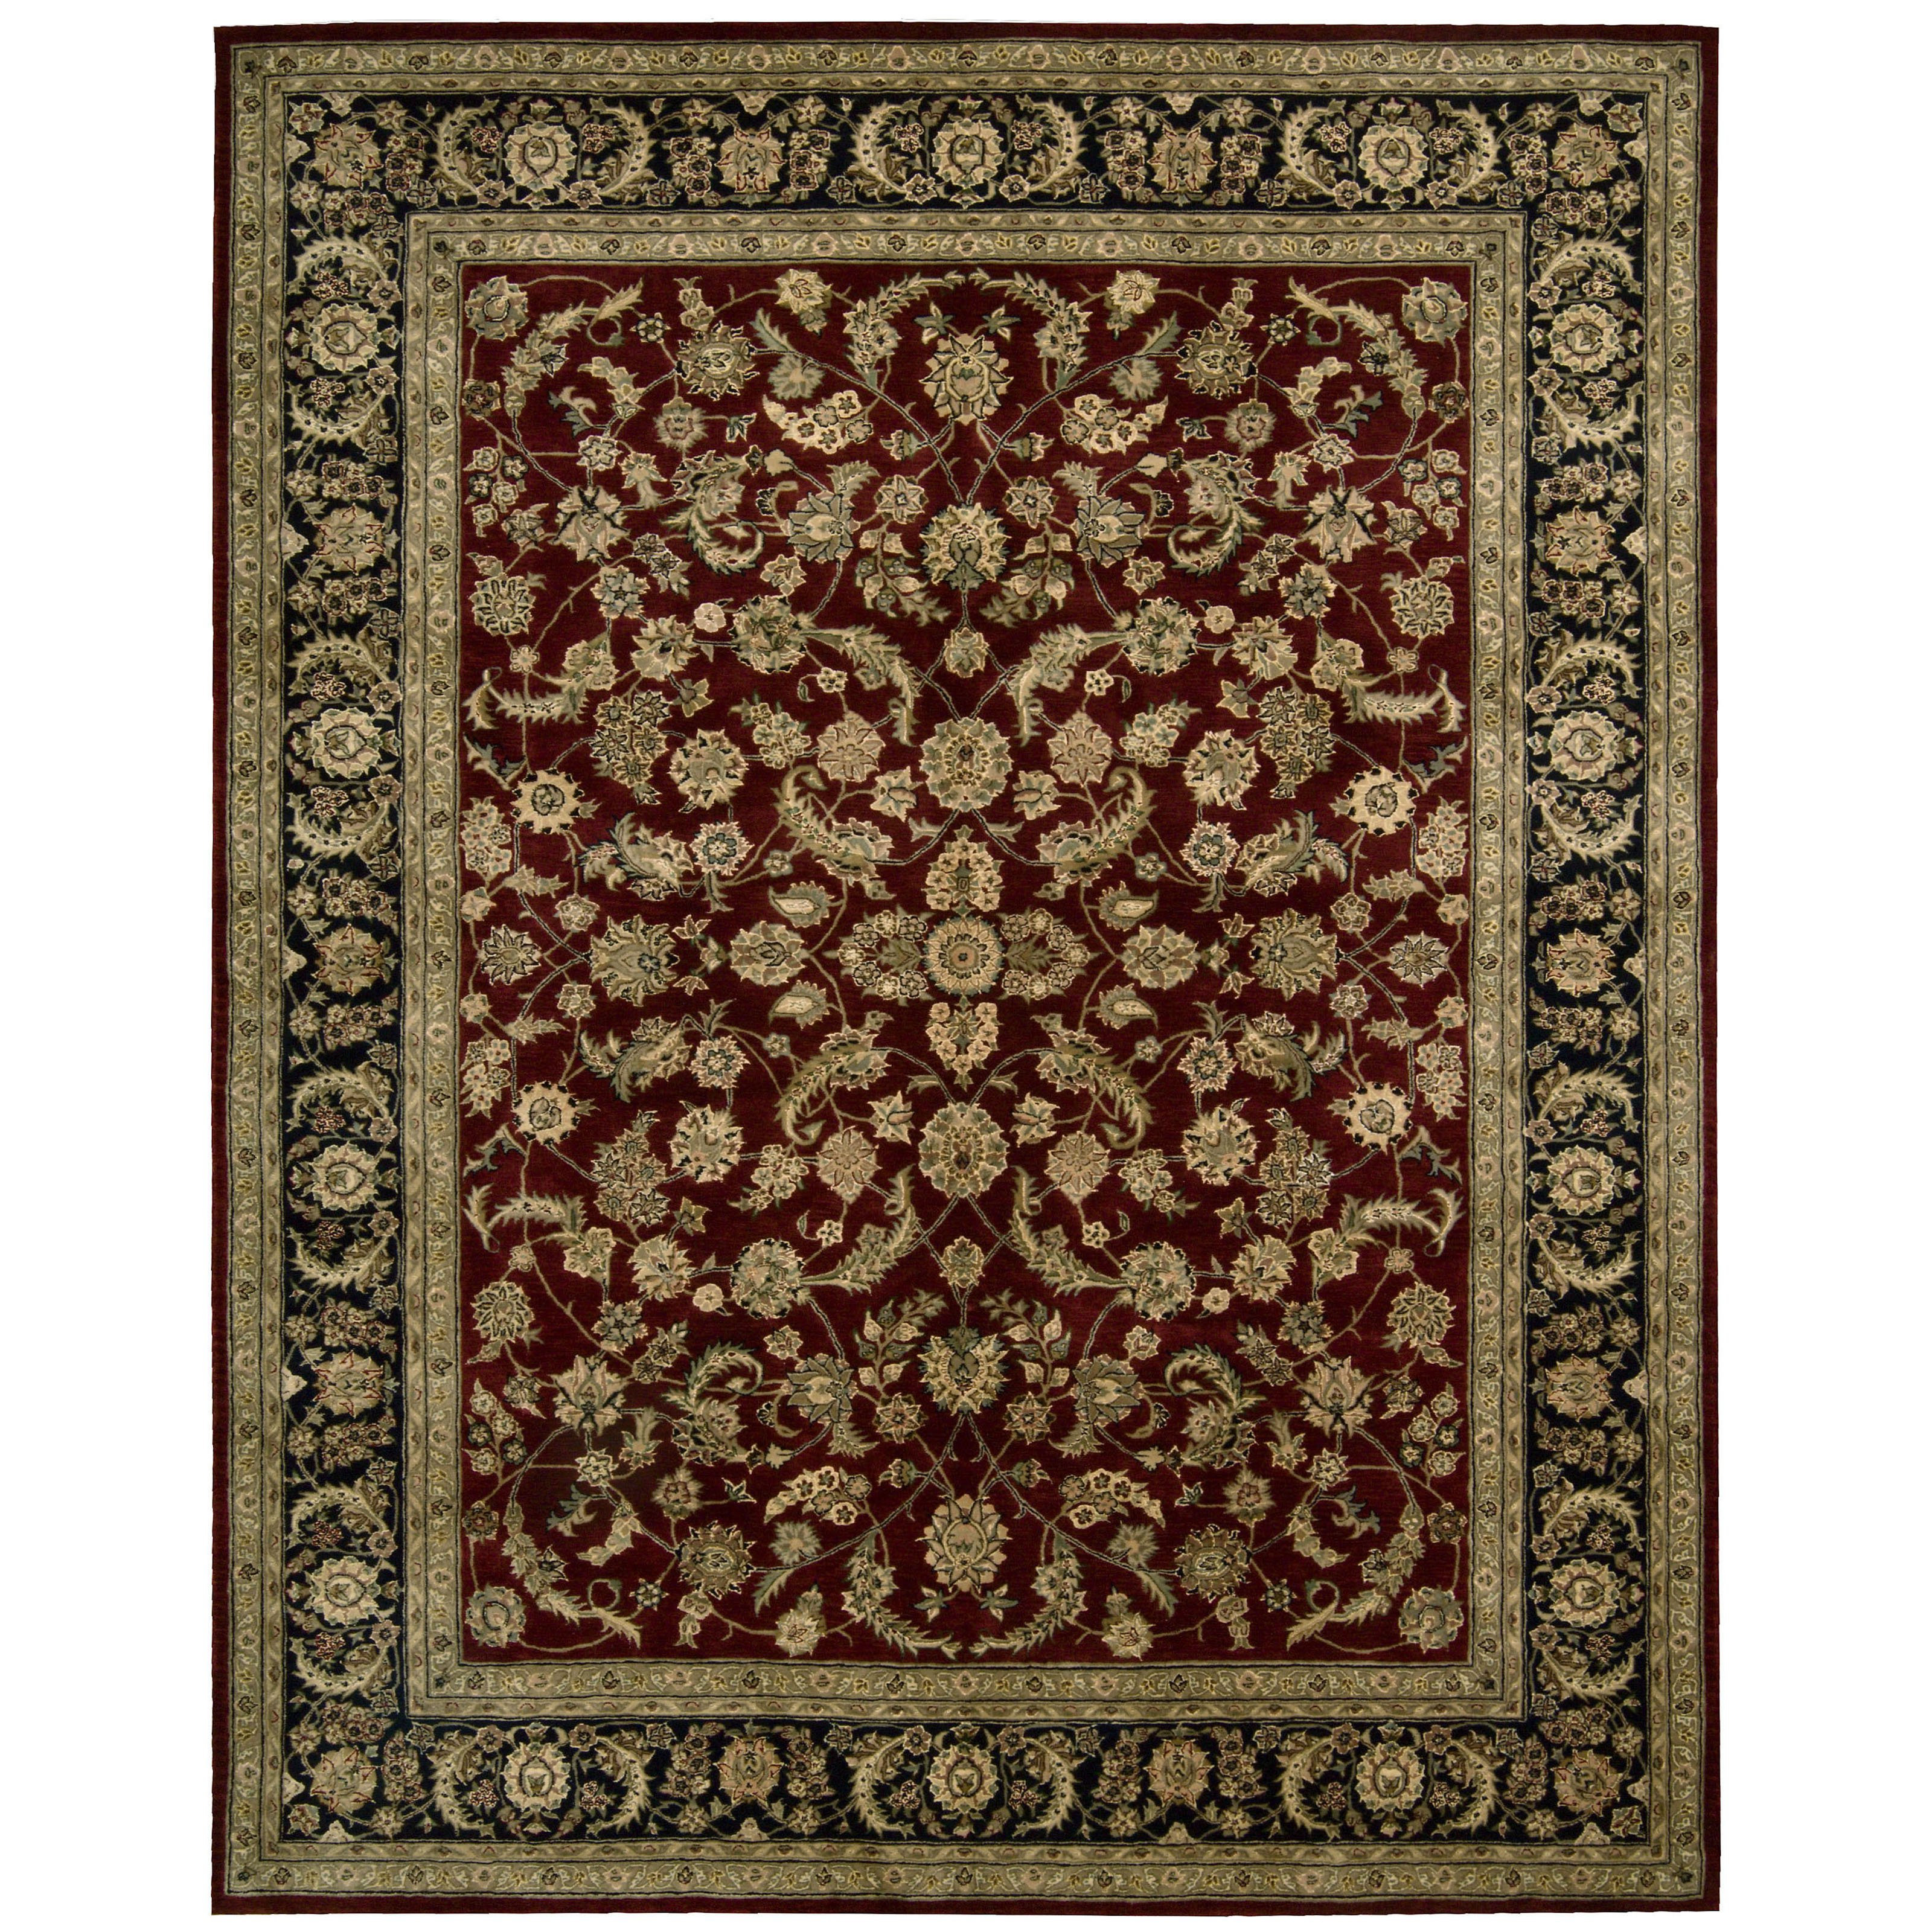 Nourison 2000 2002 Oriental Rug Burgundy-7.9 x 9.9 ft. by Overstock